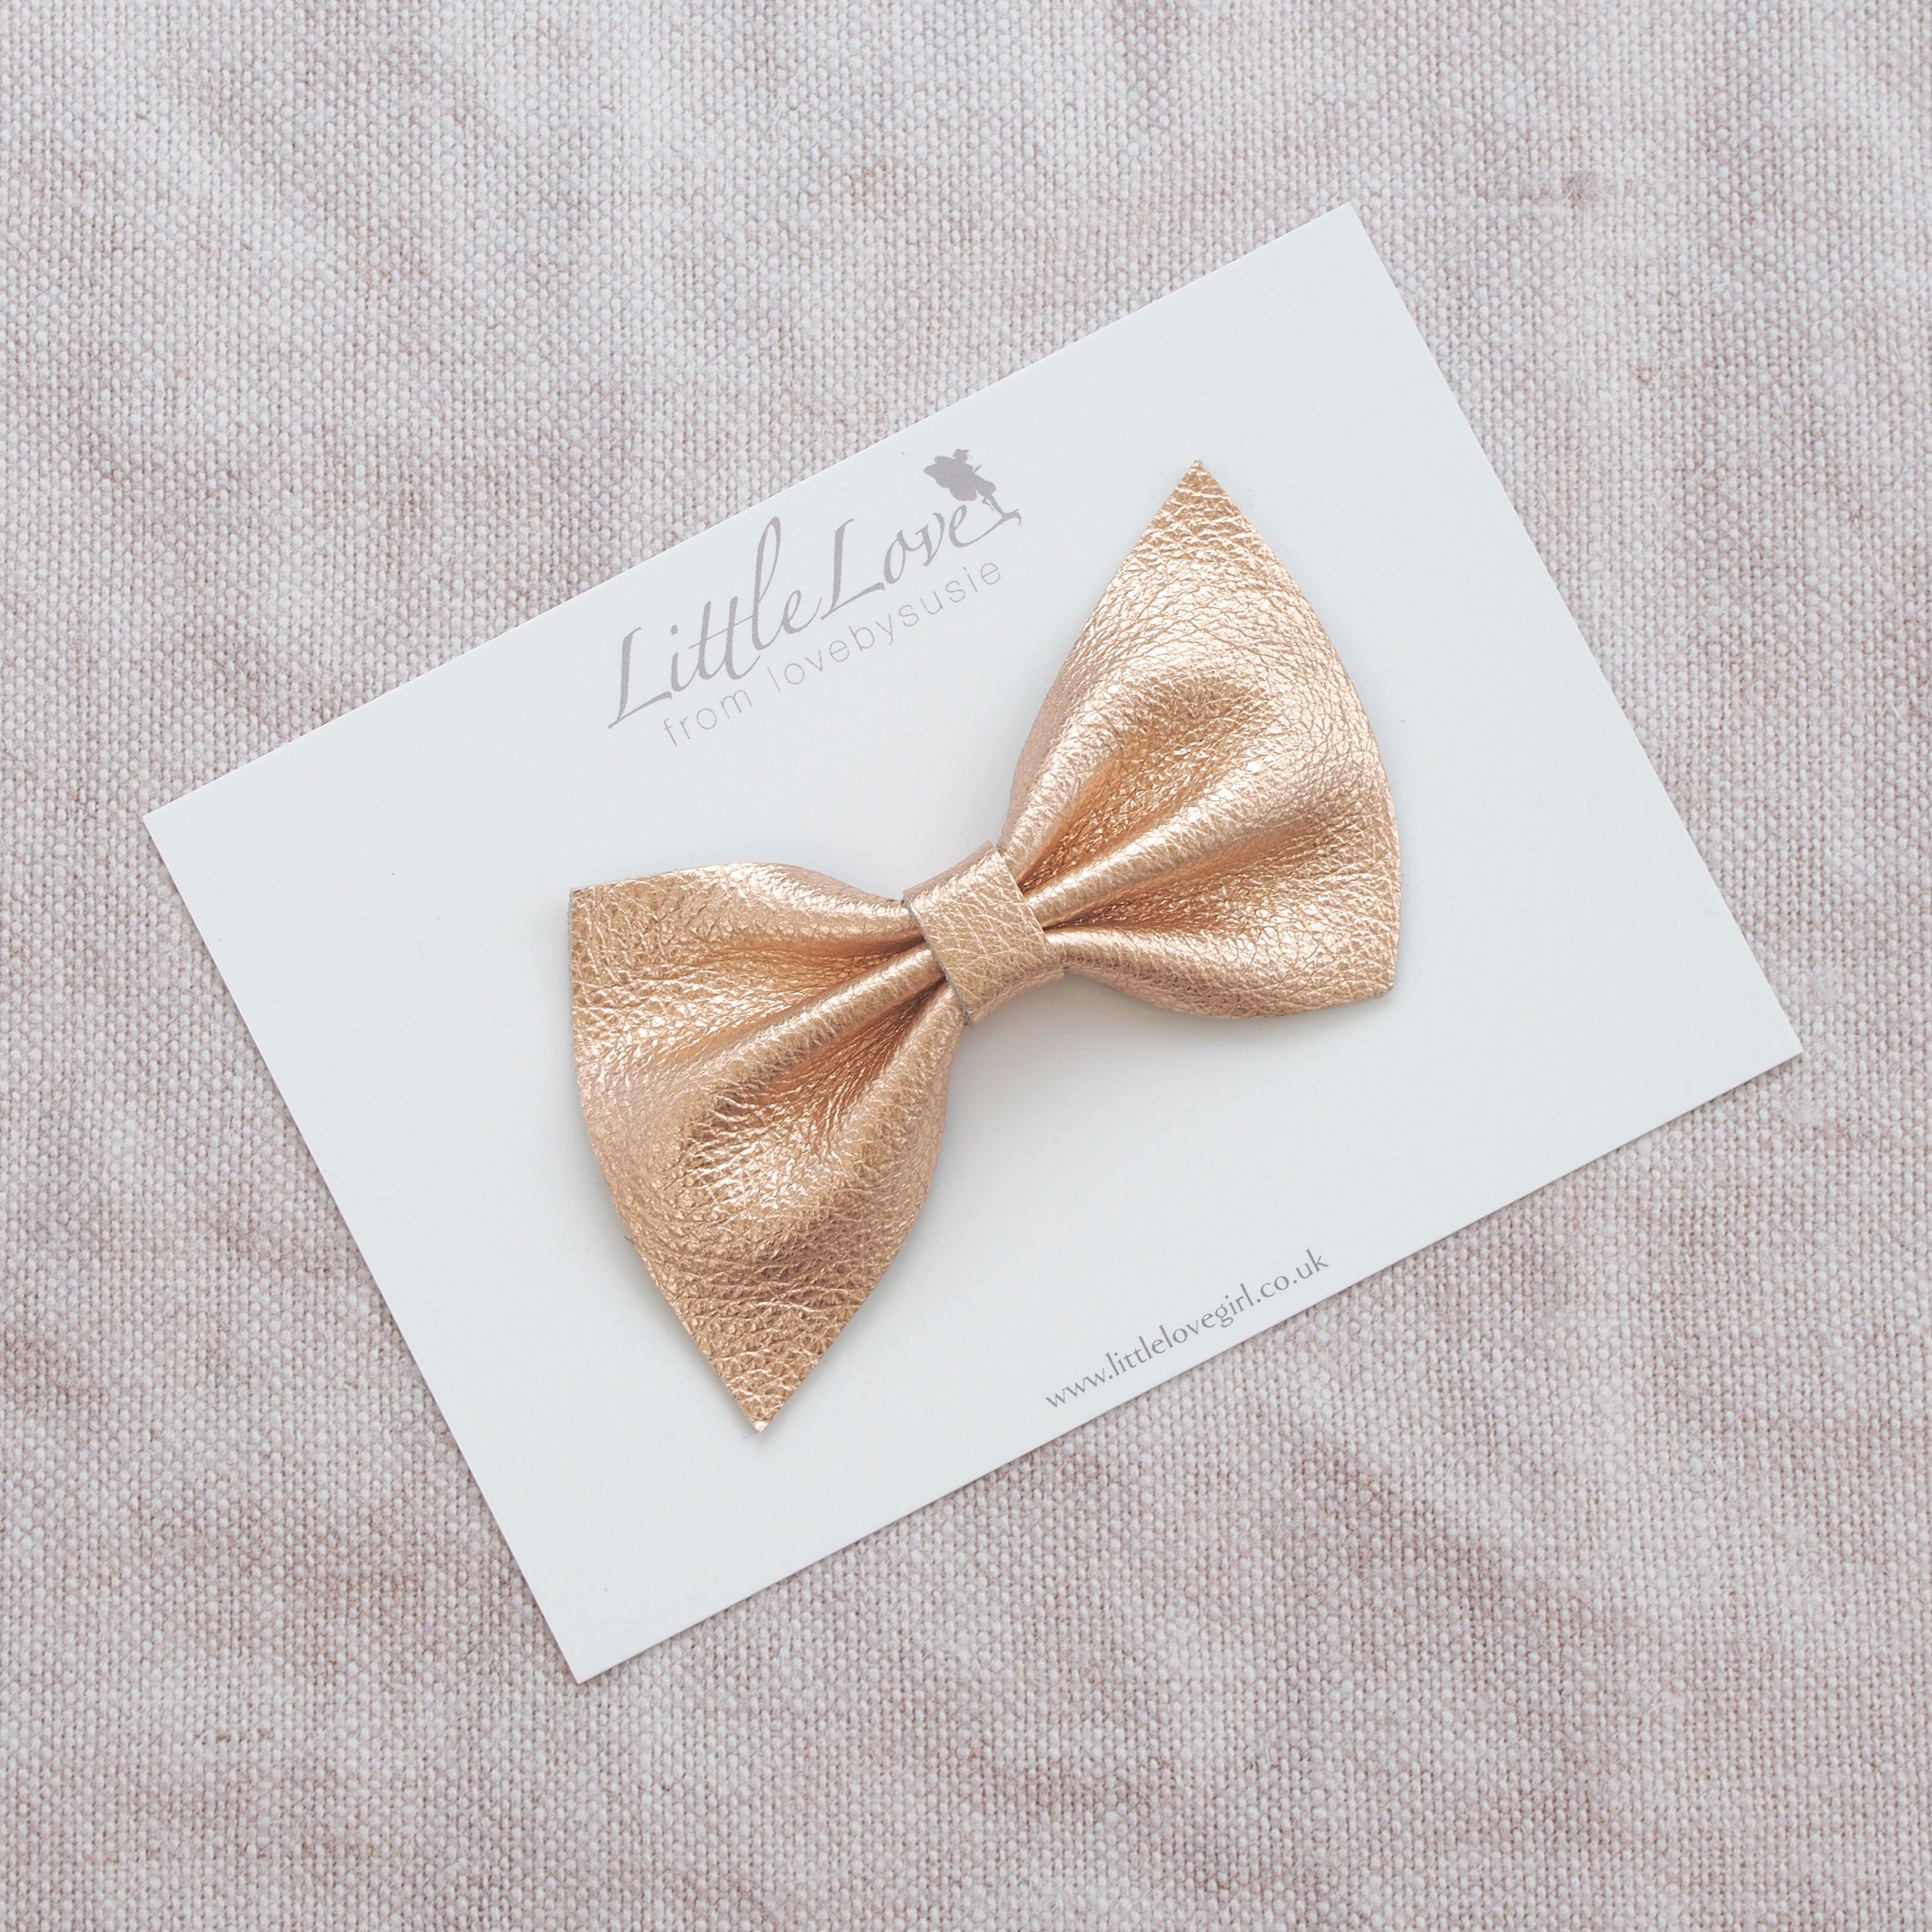 Harlow leather bow hair clip in beautiful muted pastels, neutrals, metallics, Girls Hair Clips, Little Love Hair Bow, Leather Bows, Rose Gold Bow, Metallic Leather Hair bow, Rose Gold Leather Bow, Little Love, Rose Gold Hair Bow, rose gold leather bow, rose gold leather bows, genuine leather bow hair clips, rose gold hair bows for girl